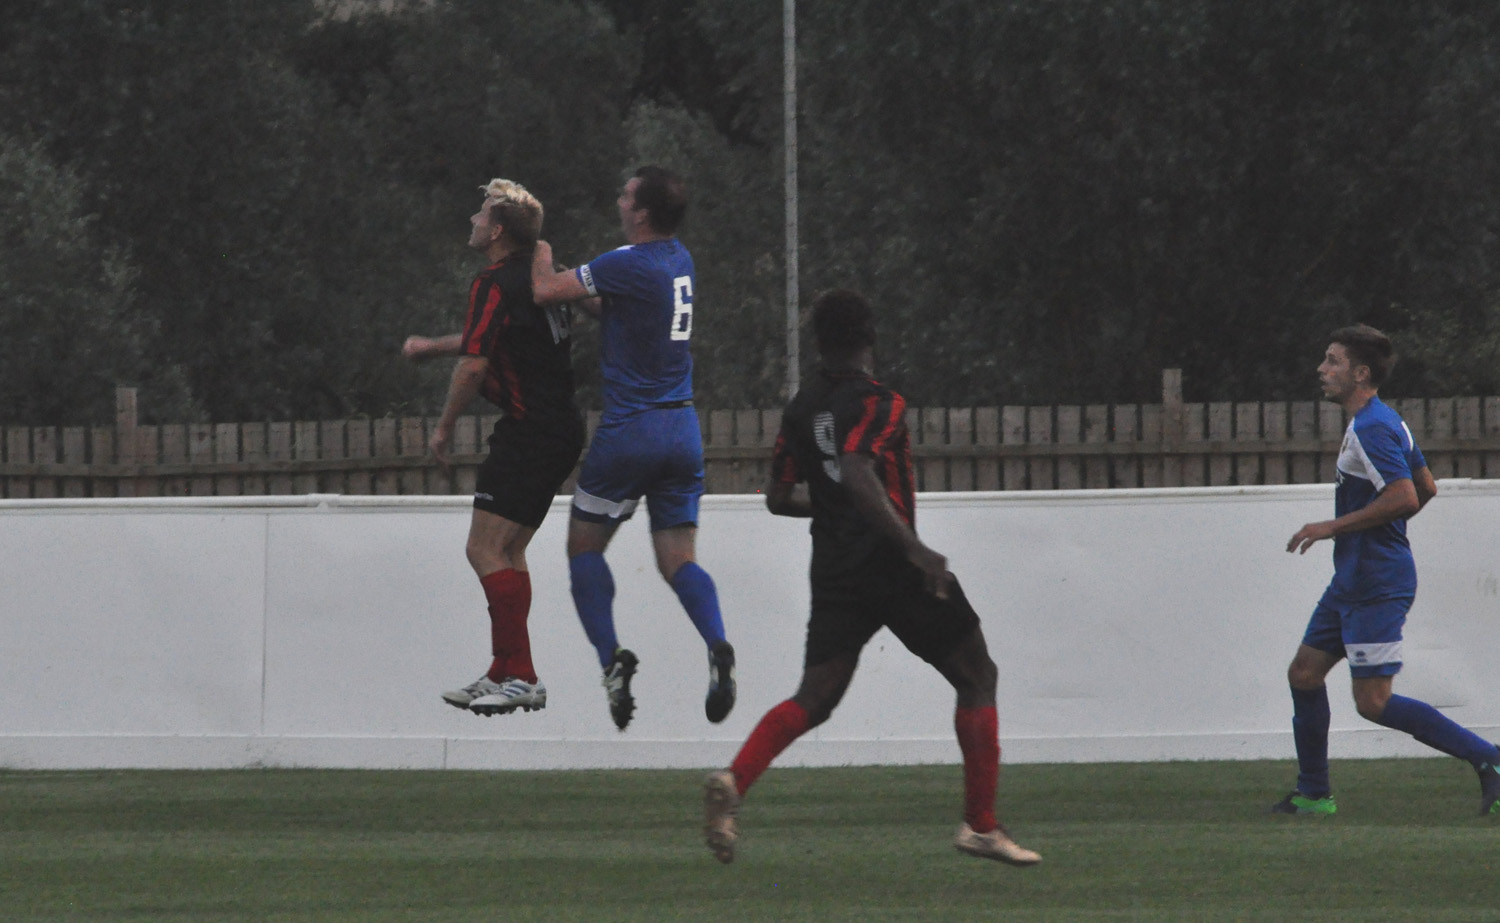 coggeshall-5-1-stanway-rovers-01-08-17-25